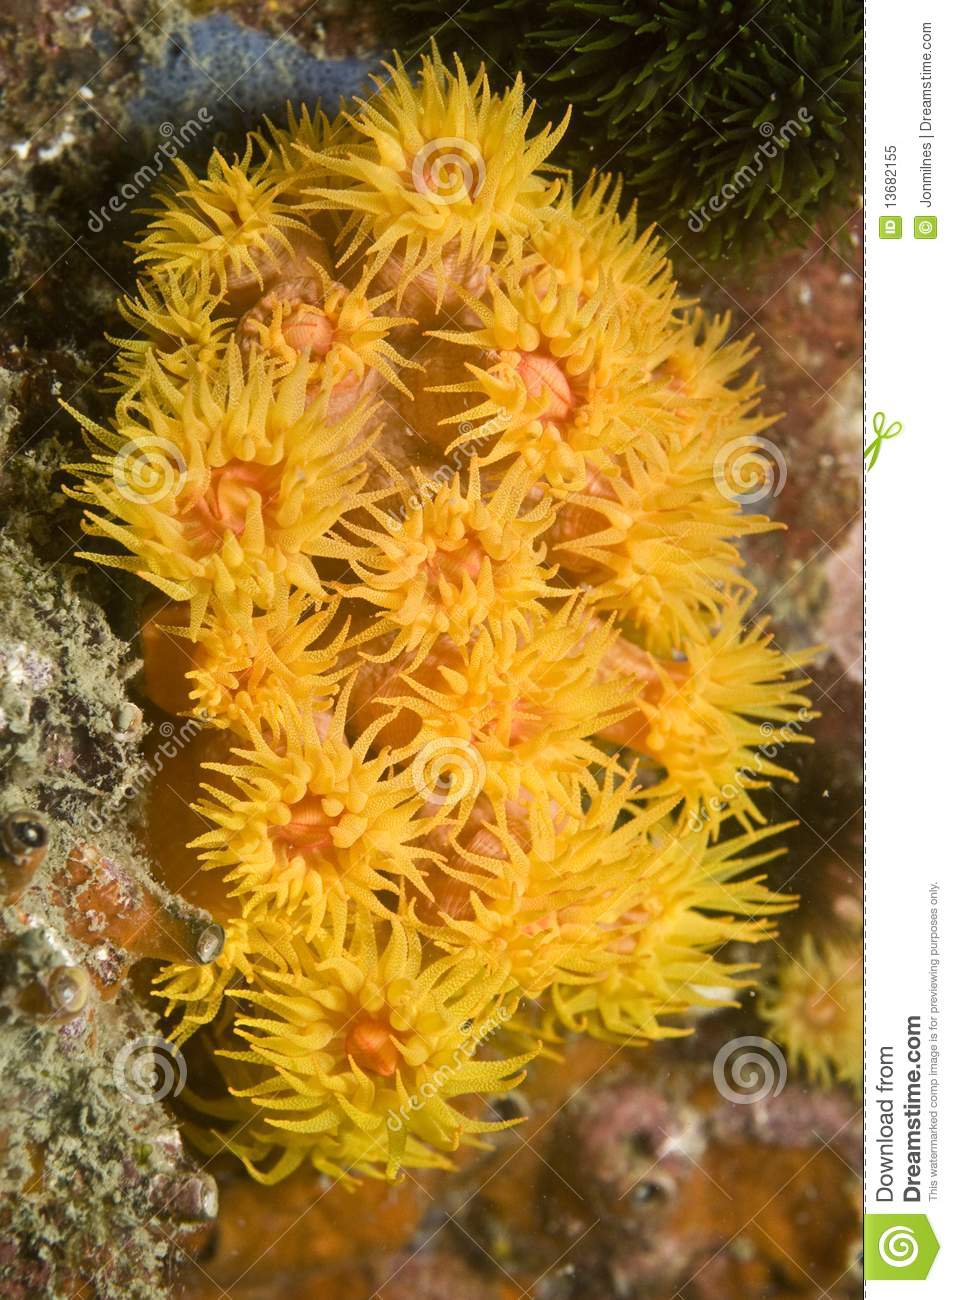 Yellow Cup Coral Royalty Free Stock Photo - Image: 13682155